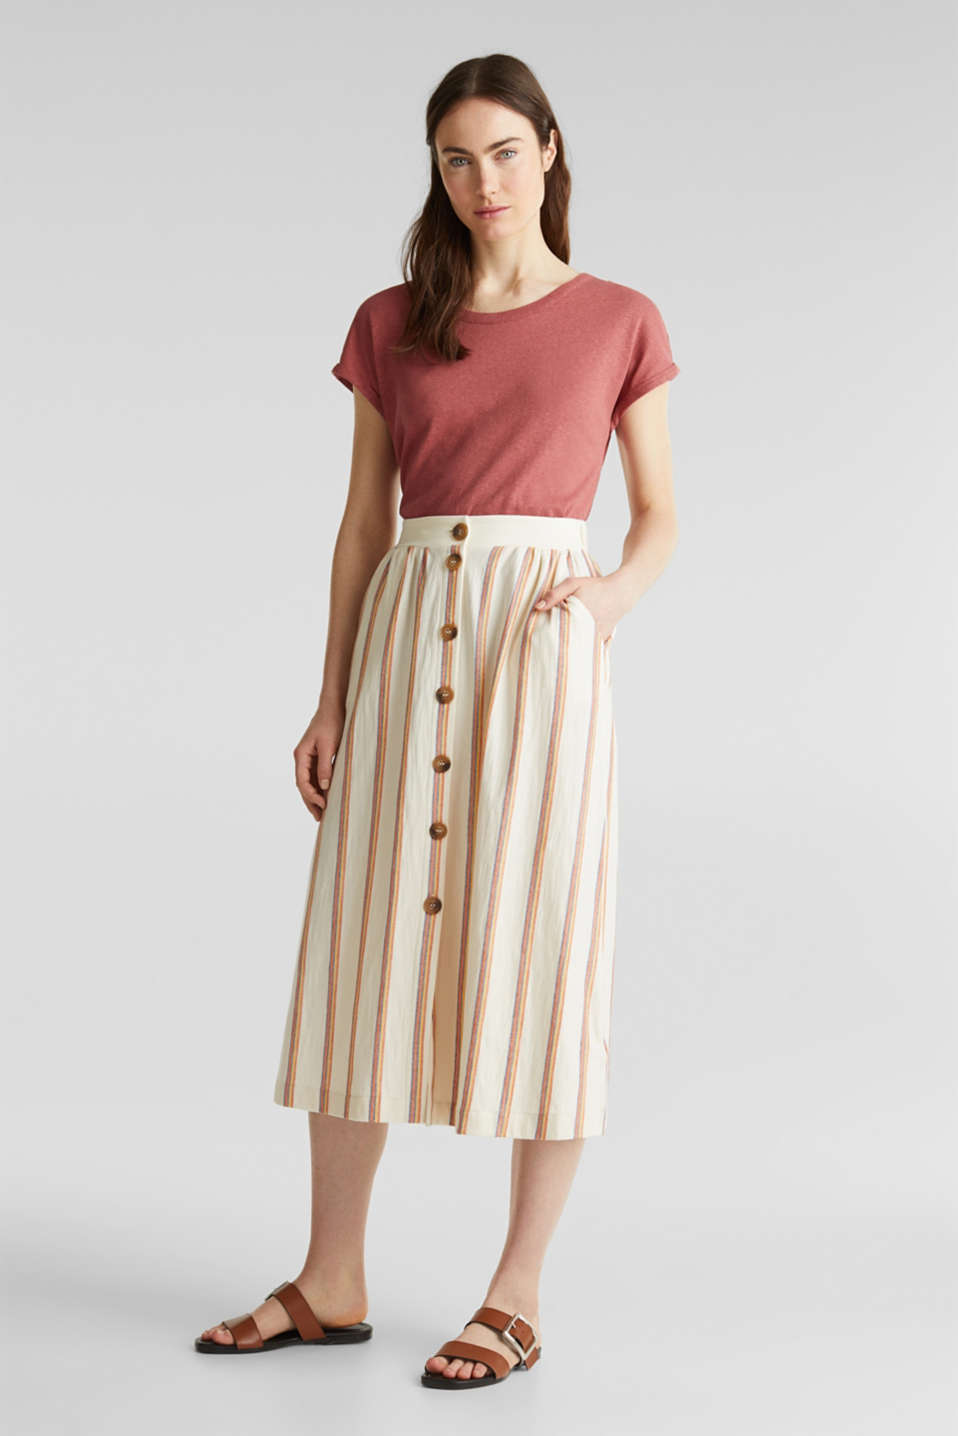 Esprit - Midi skirt with stripes and a button placket